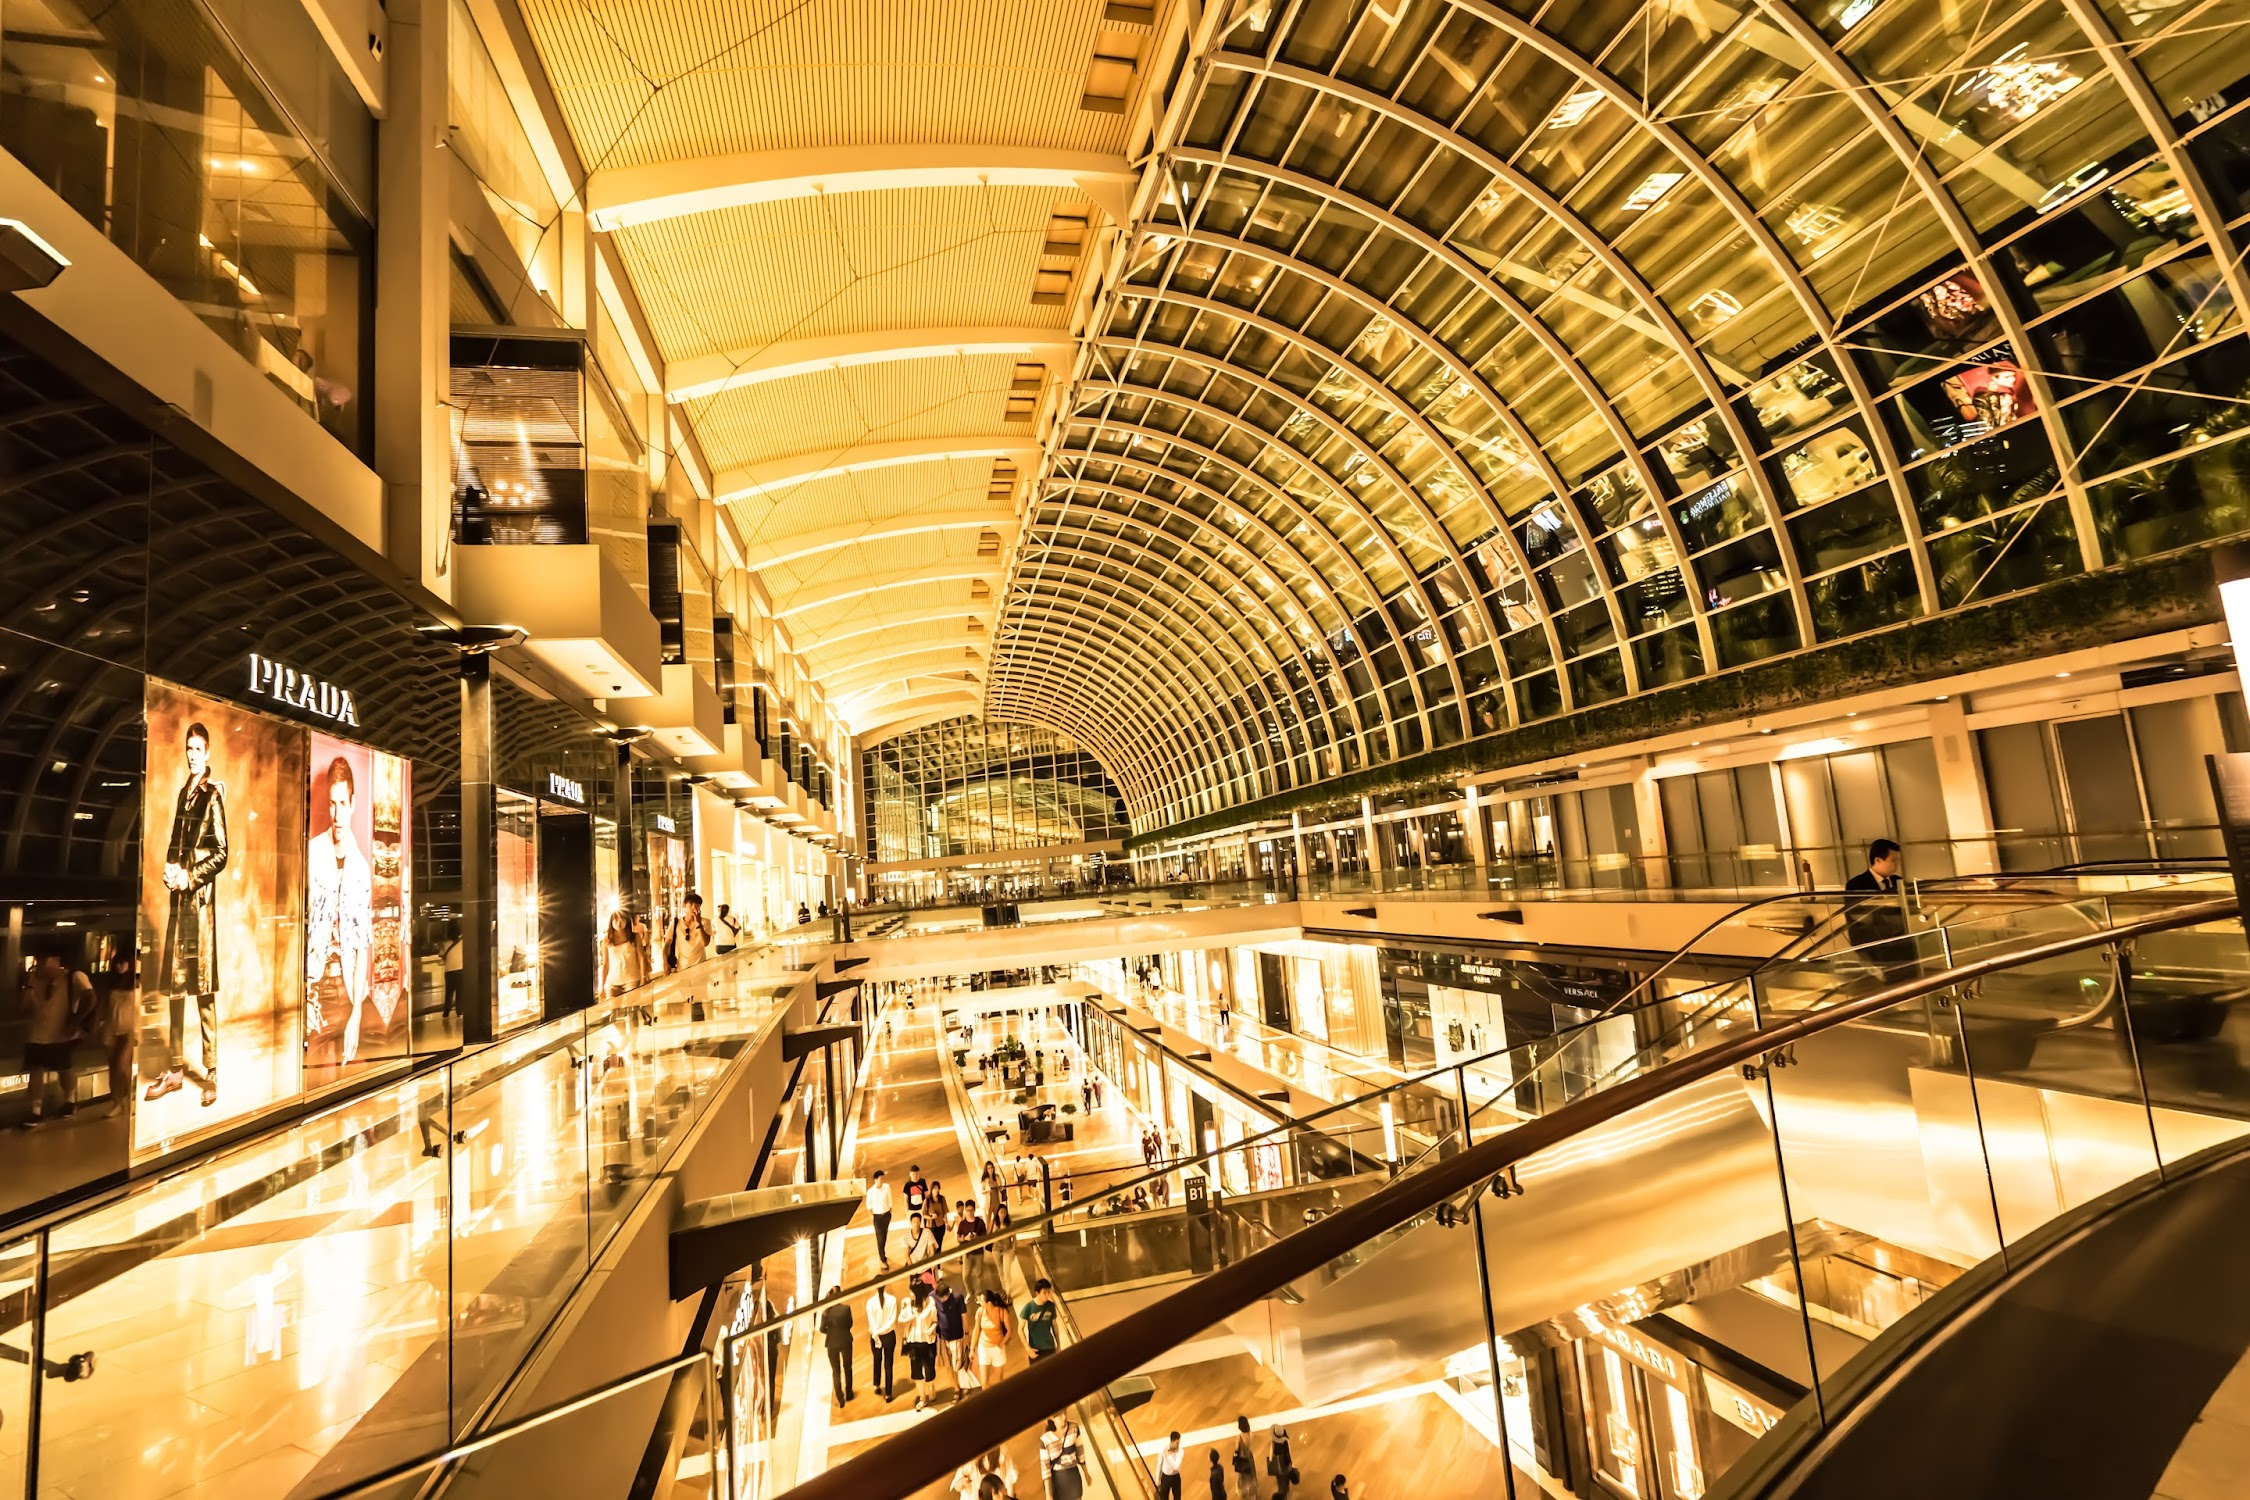 Singapore Shoppes at Marina Bay Sands1